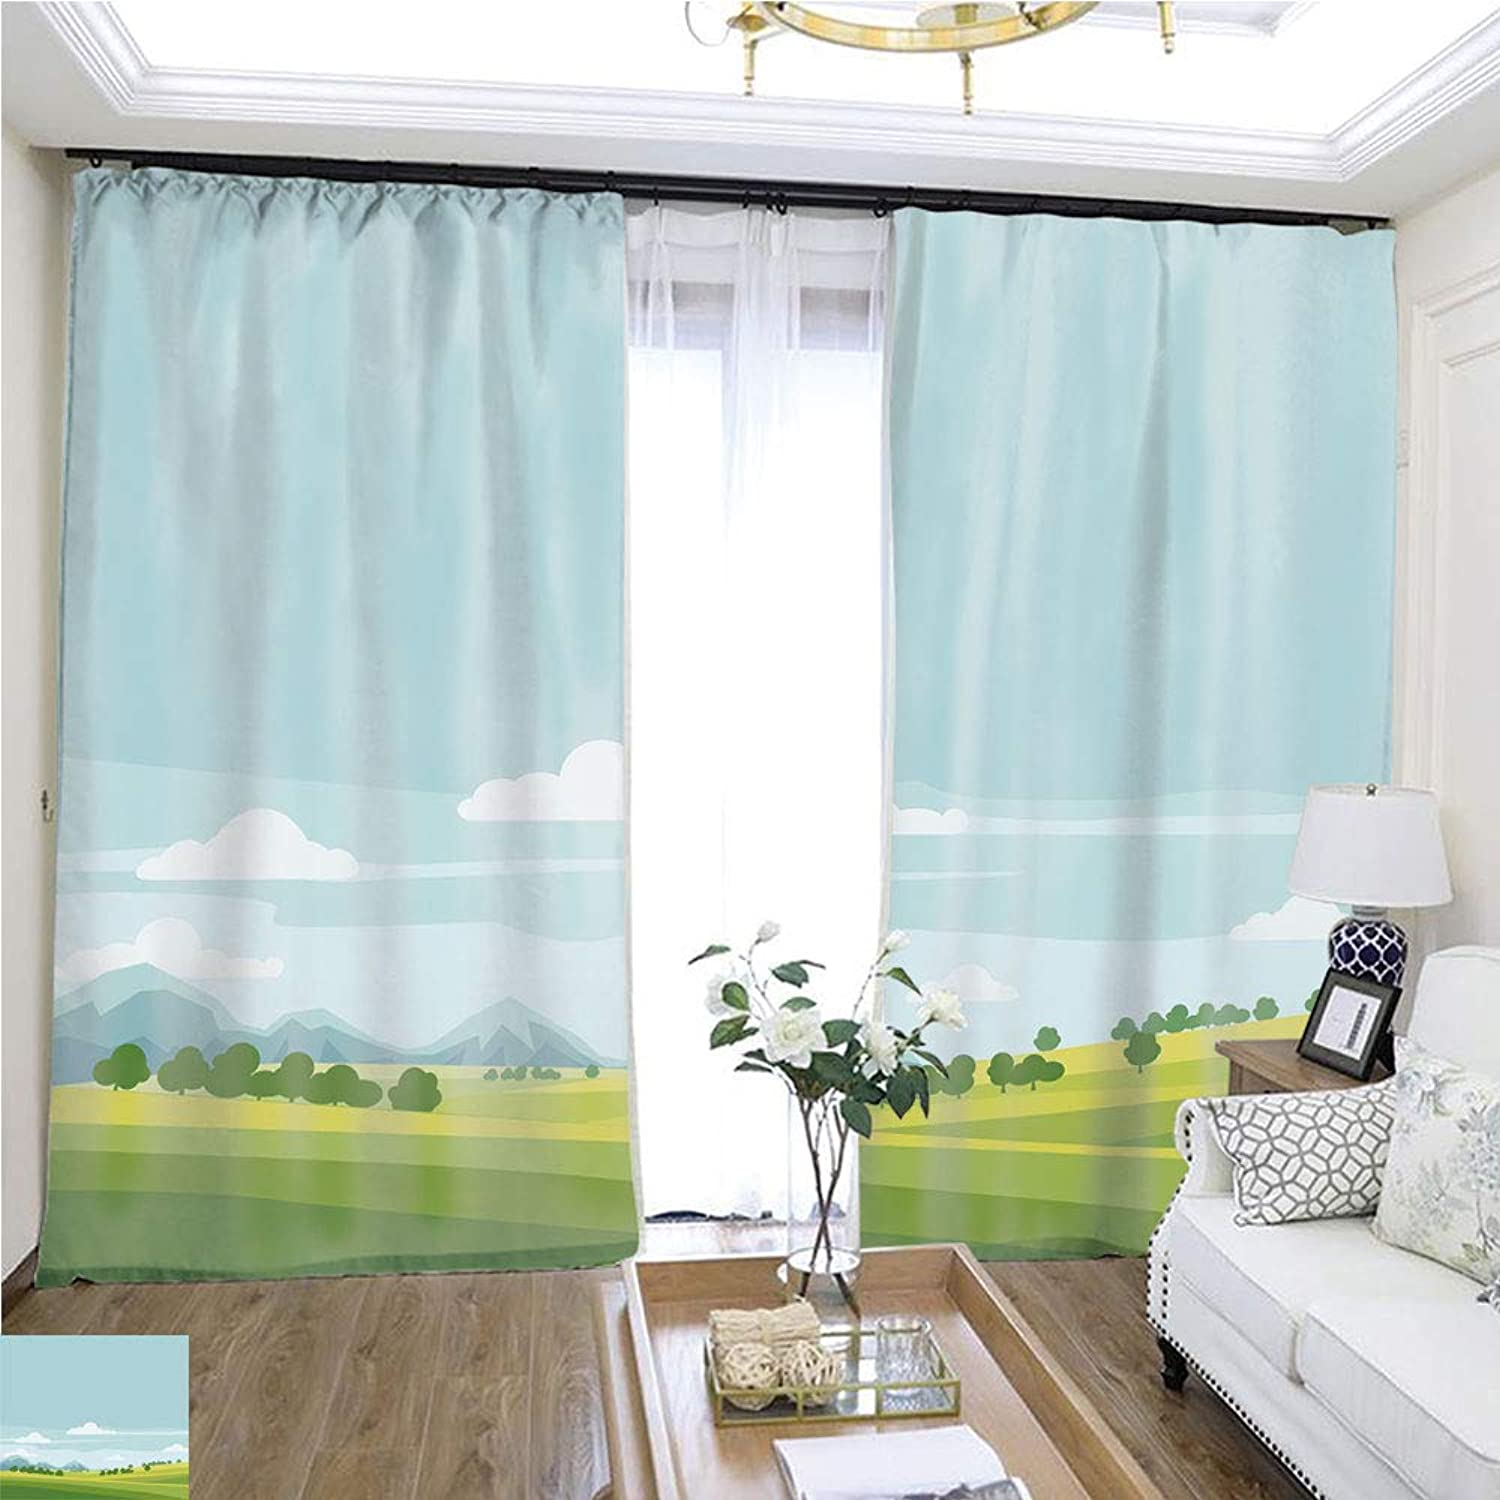 Air Port Screen Cute Rural Landscape Tree Field Mountains Cartoon Style Vector Illustration Isolated W96 x L216 Provide Heat Highprecision Curtains for bedrooms Living Rooms Kitchens etc.